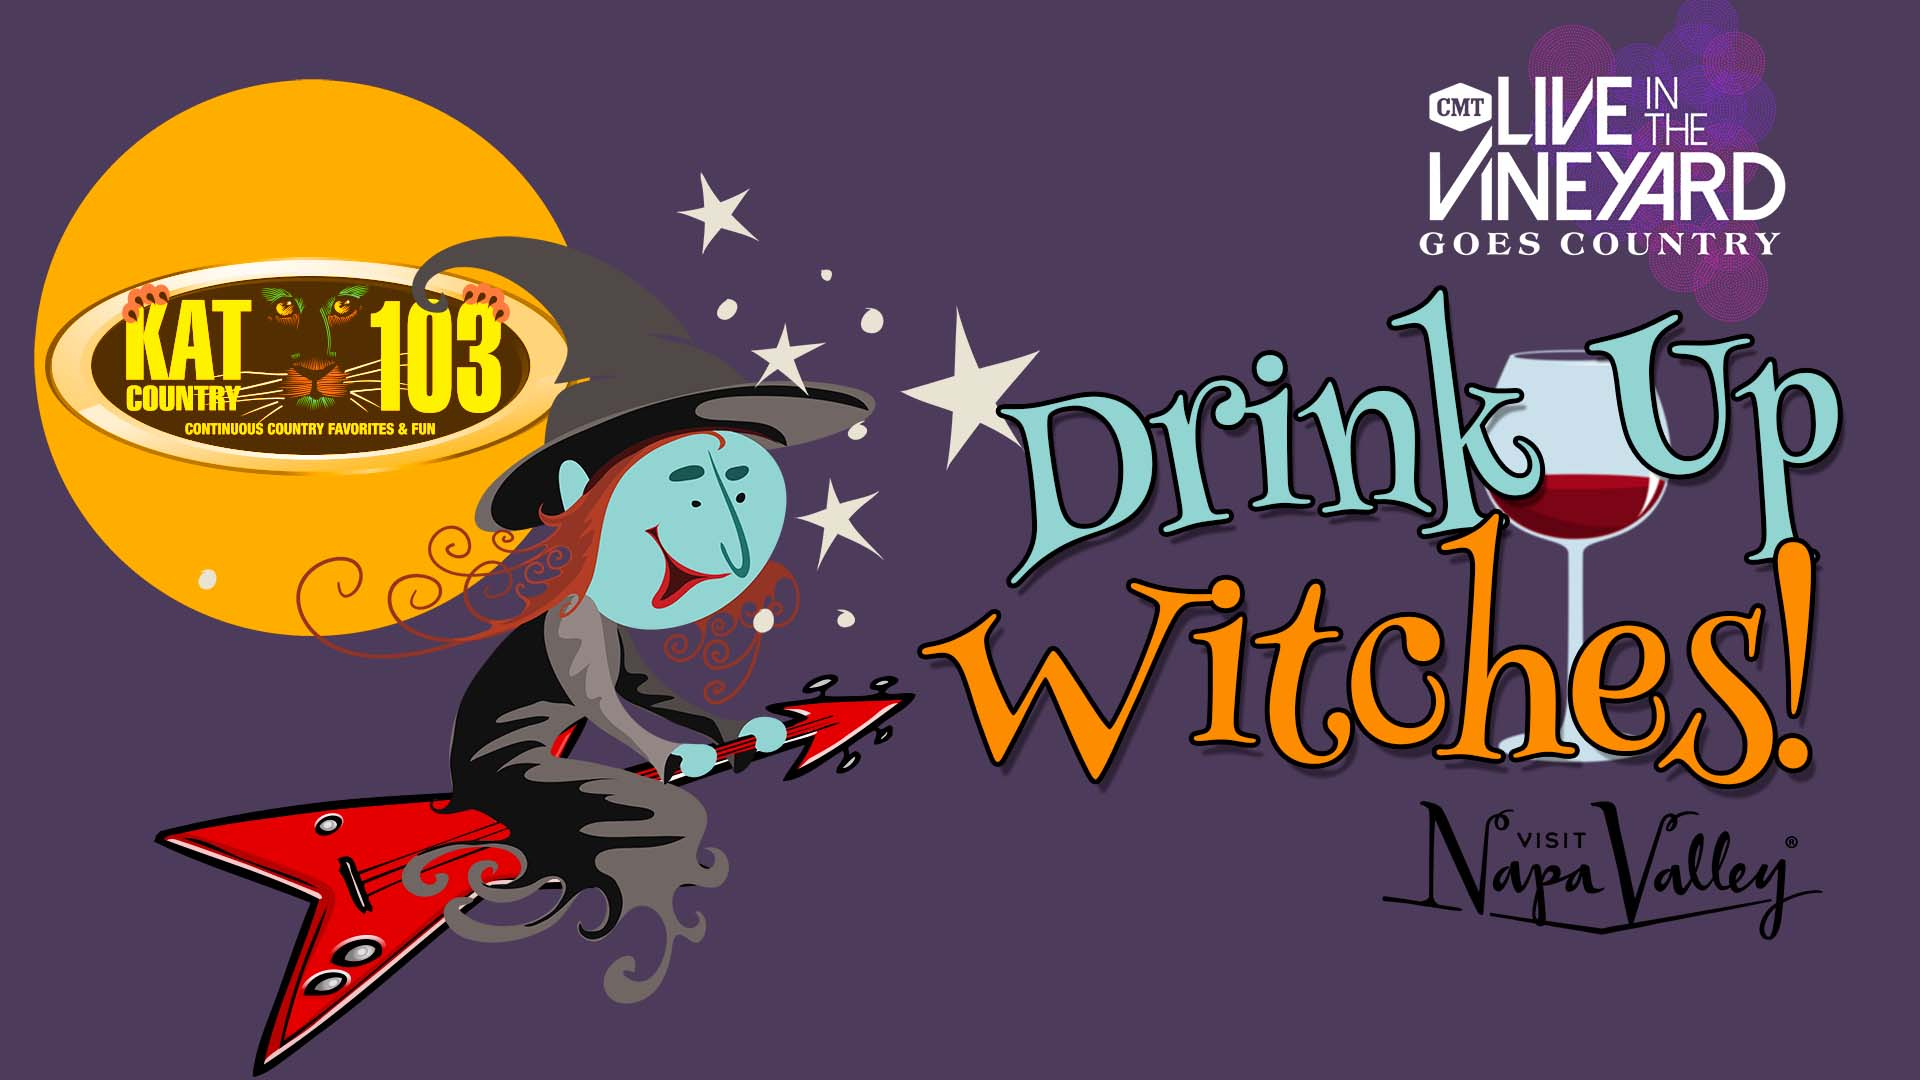 Drink Up Witches! Win a Live In The Vineyard Goes Country Prize Package!